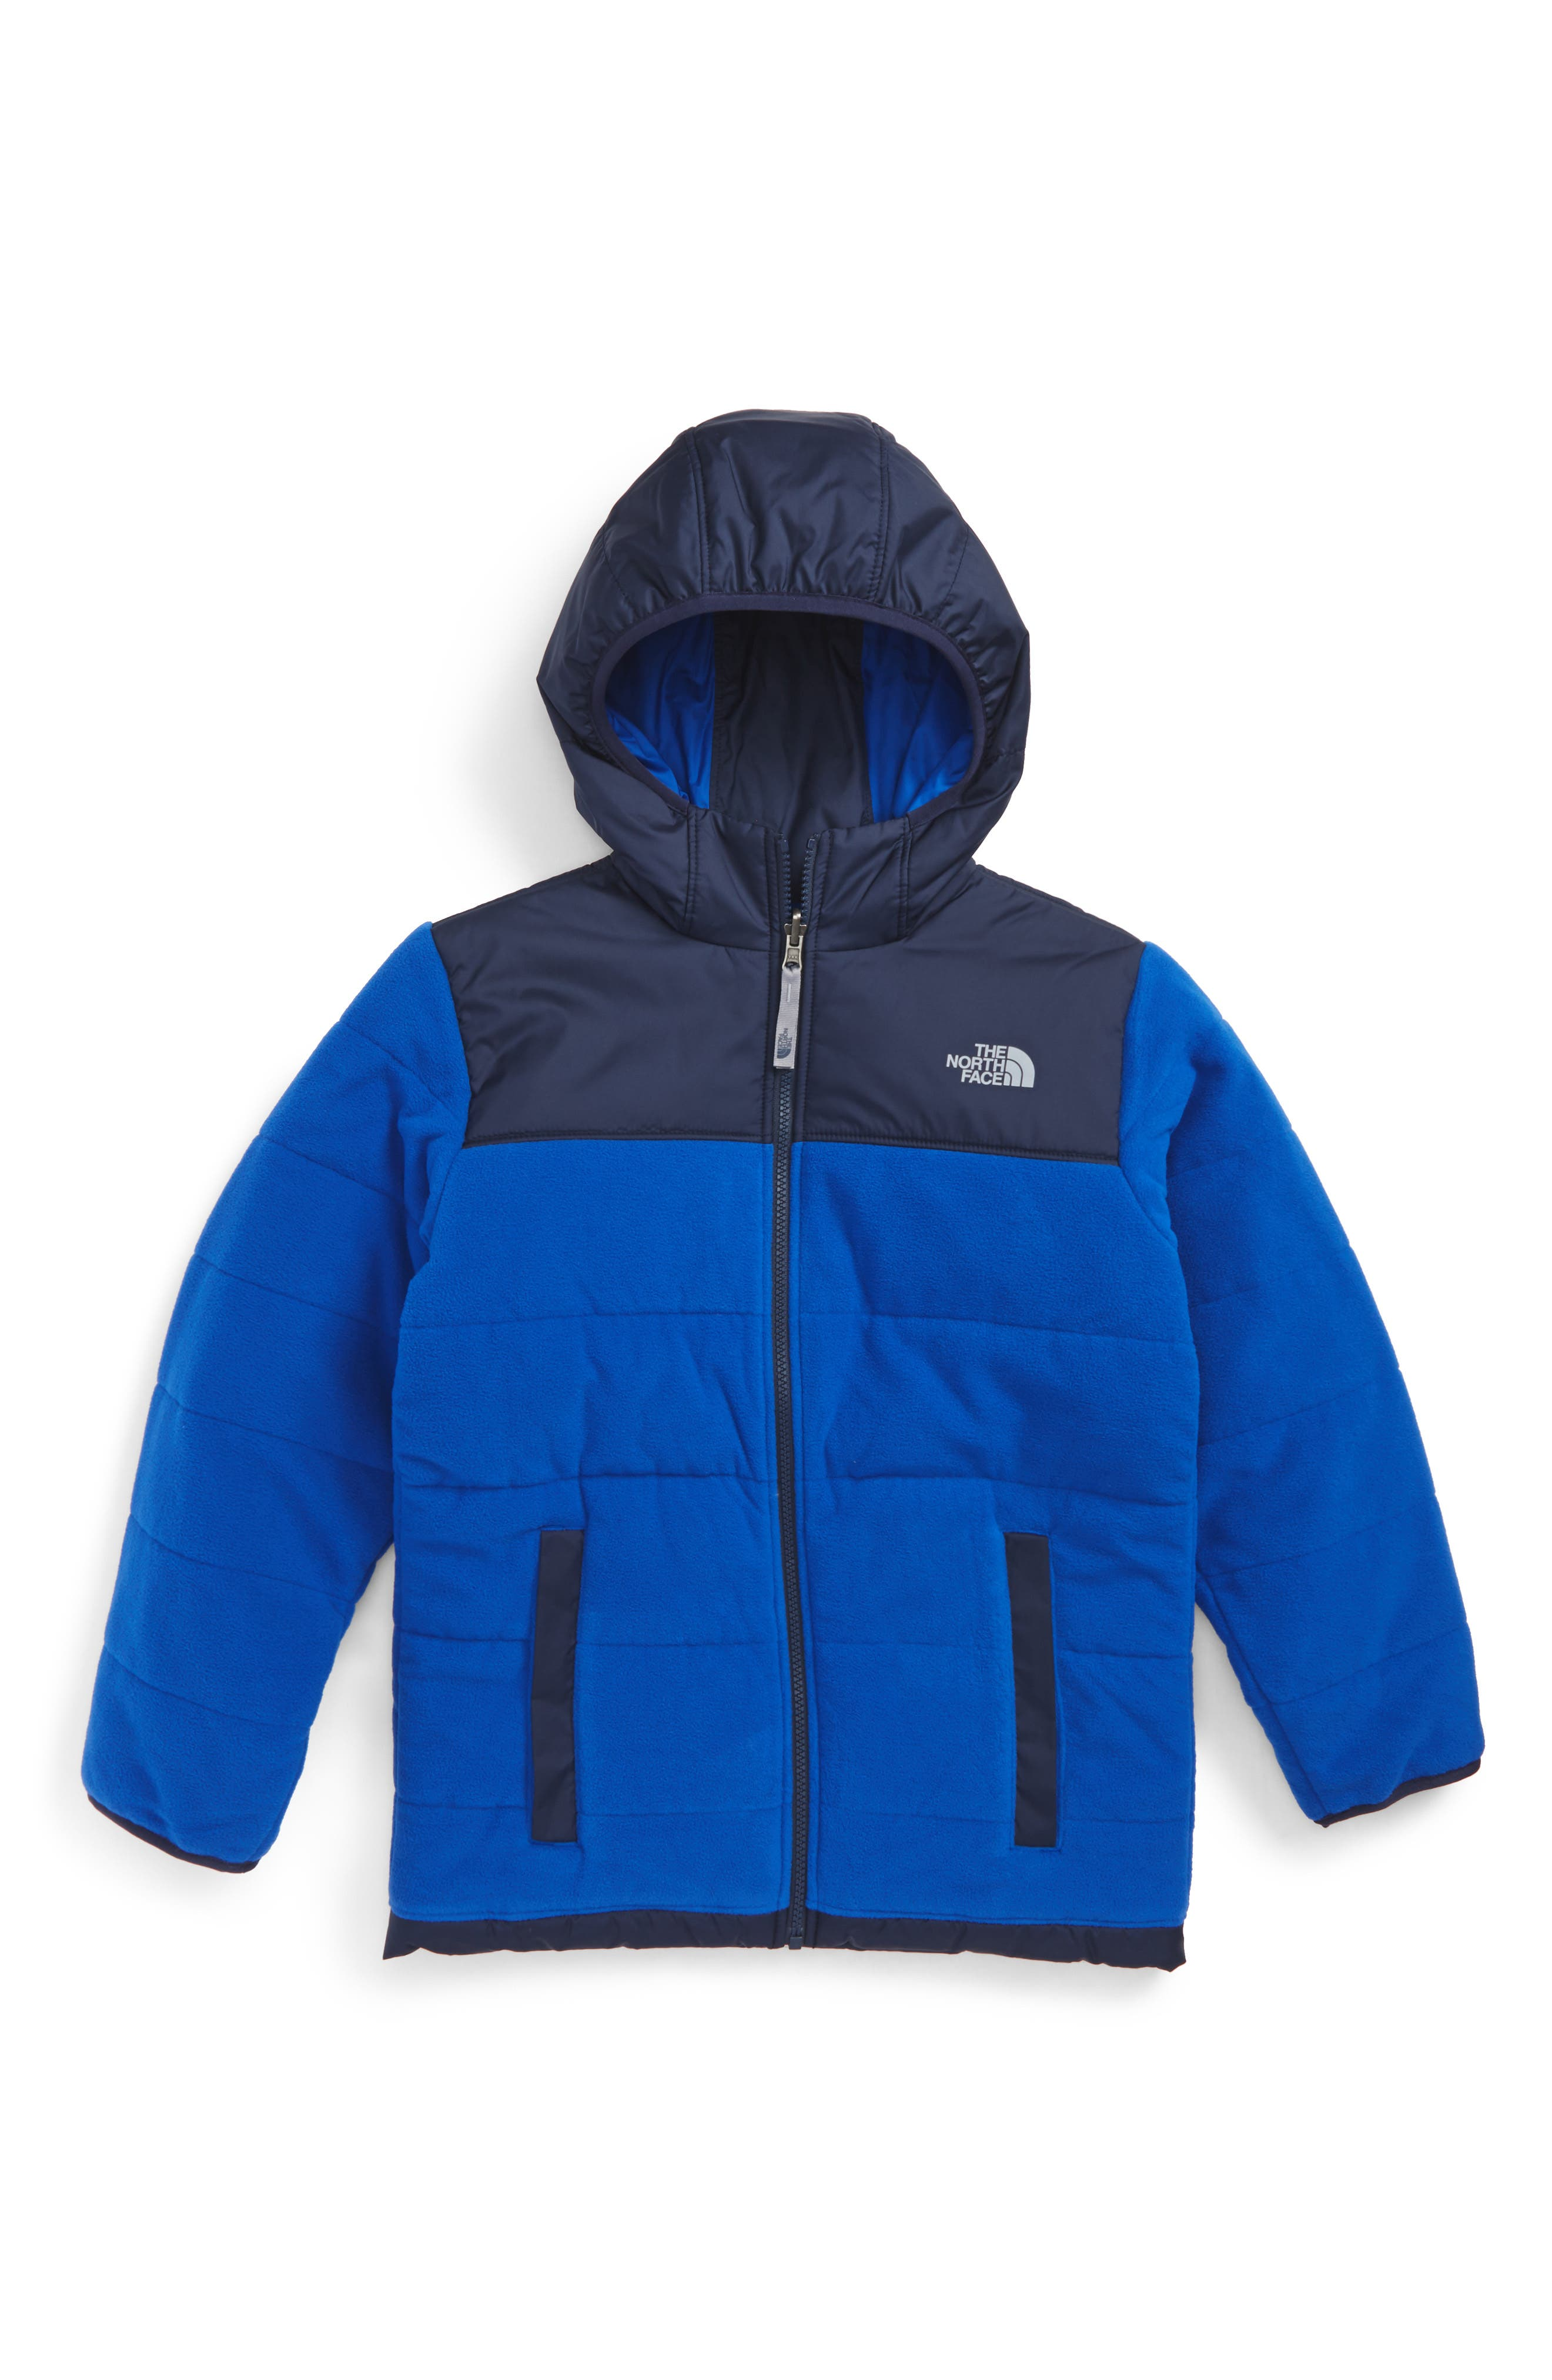 Alternate Image 1 Selected - The North Face True or False Reversible Jacket (Big Boys)